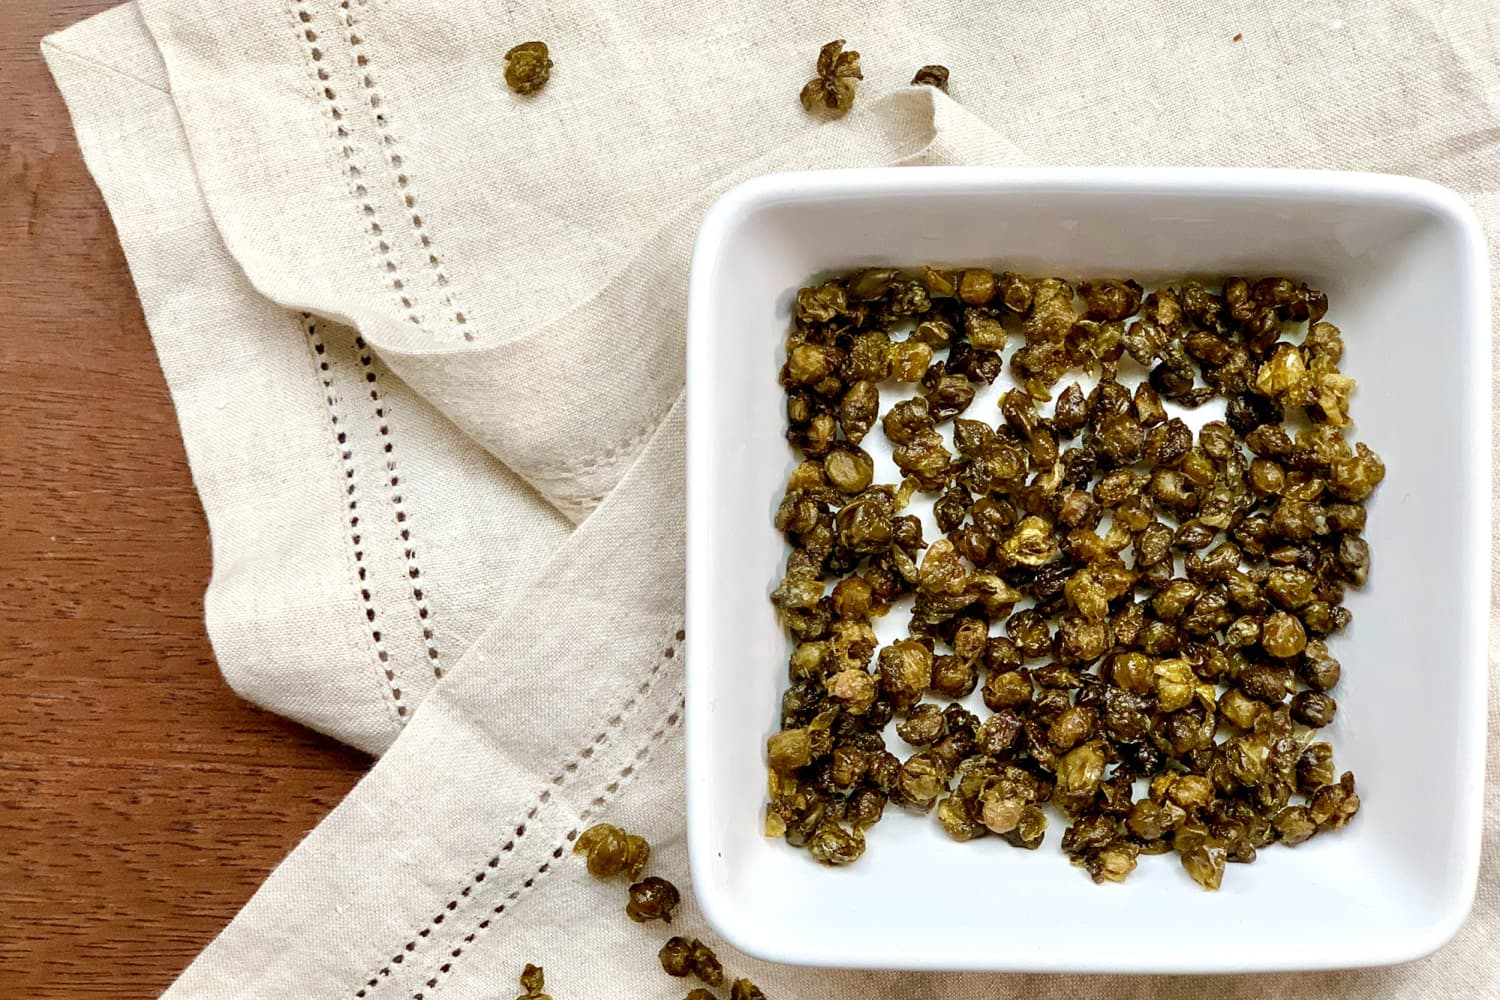 Fried Capers Are the Magical Flavor Sprinkles Your Meal Needs